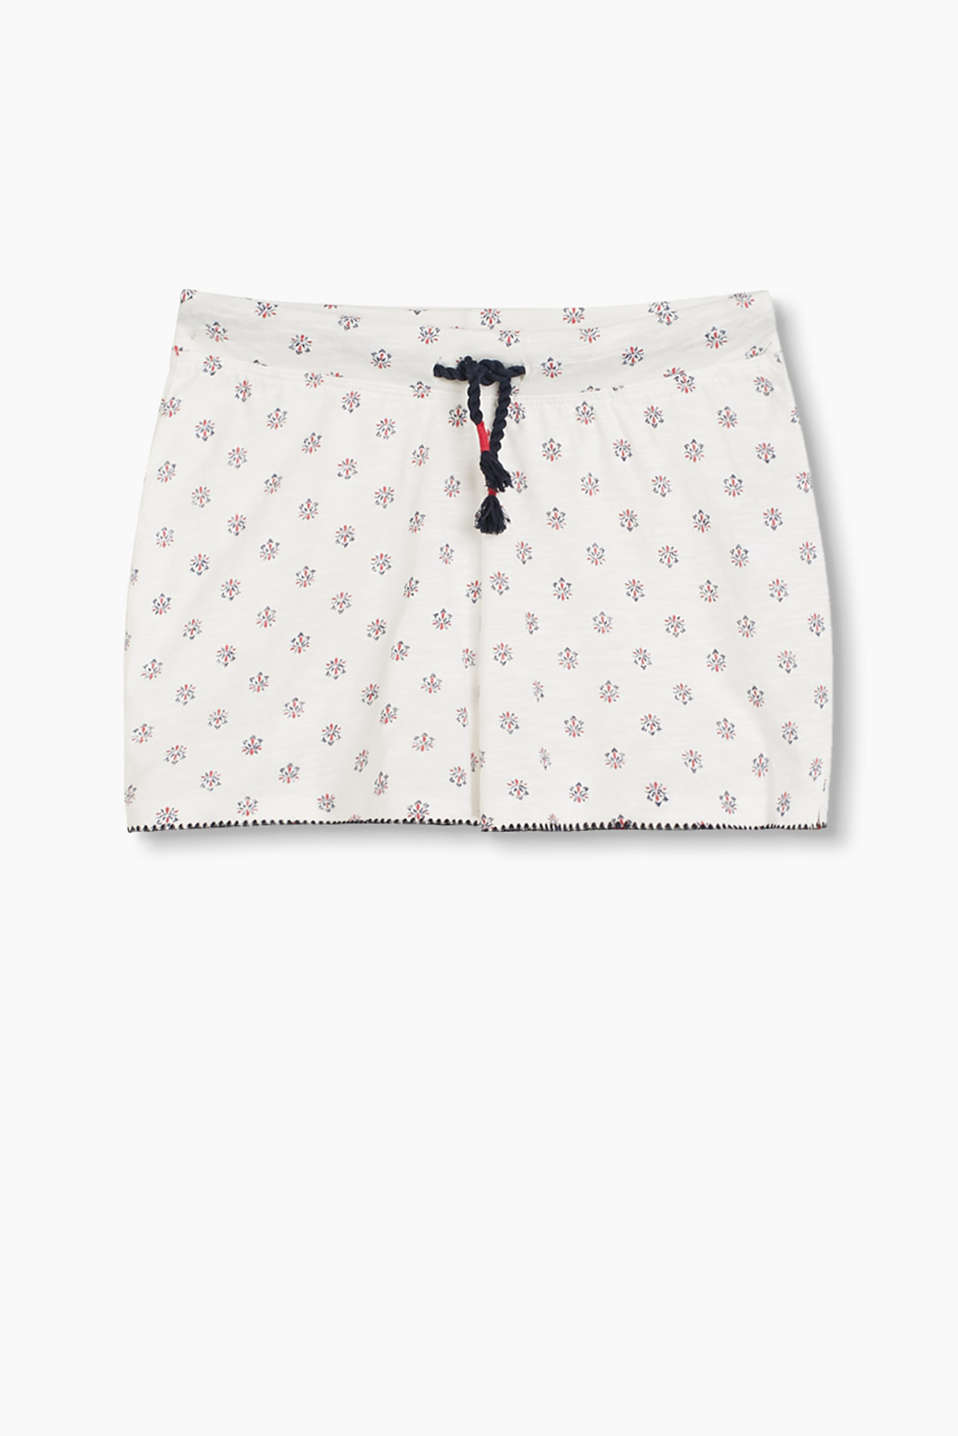 Slub jersey shorts with a pretty intarsia print, an elasticated waistband and drawstring ties.